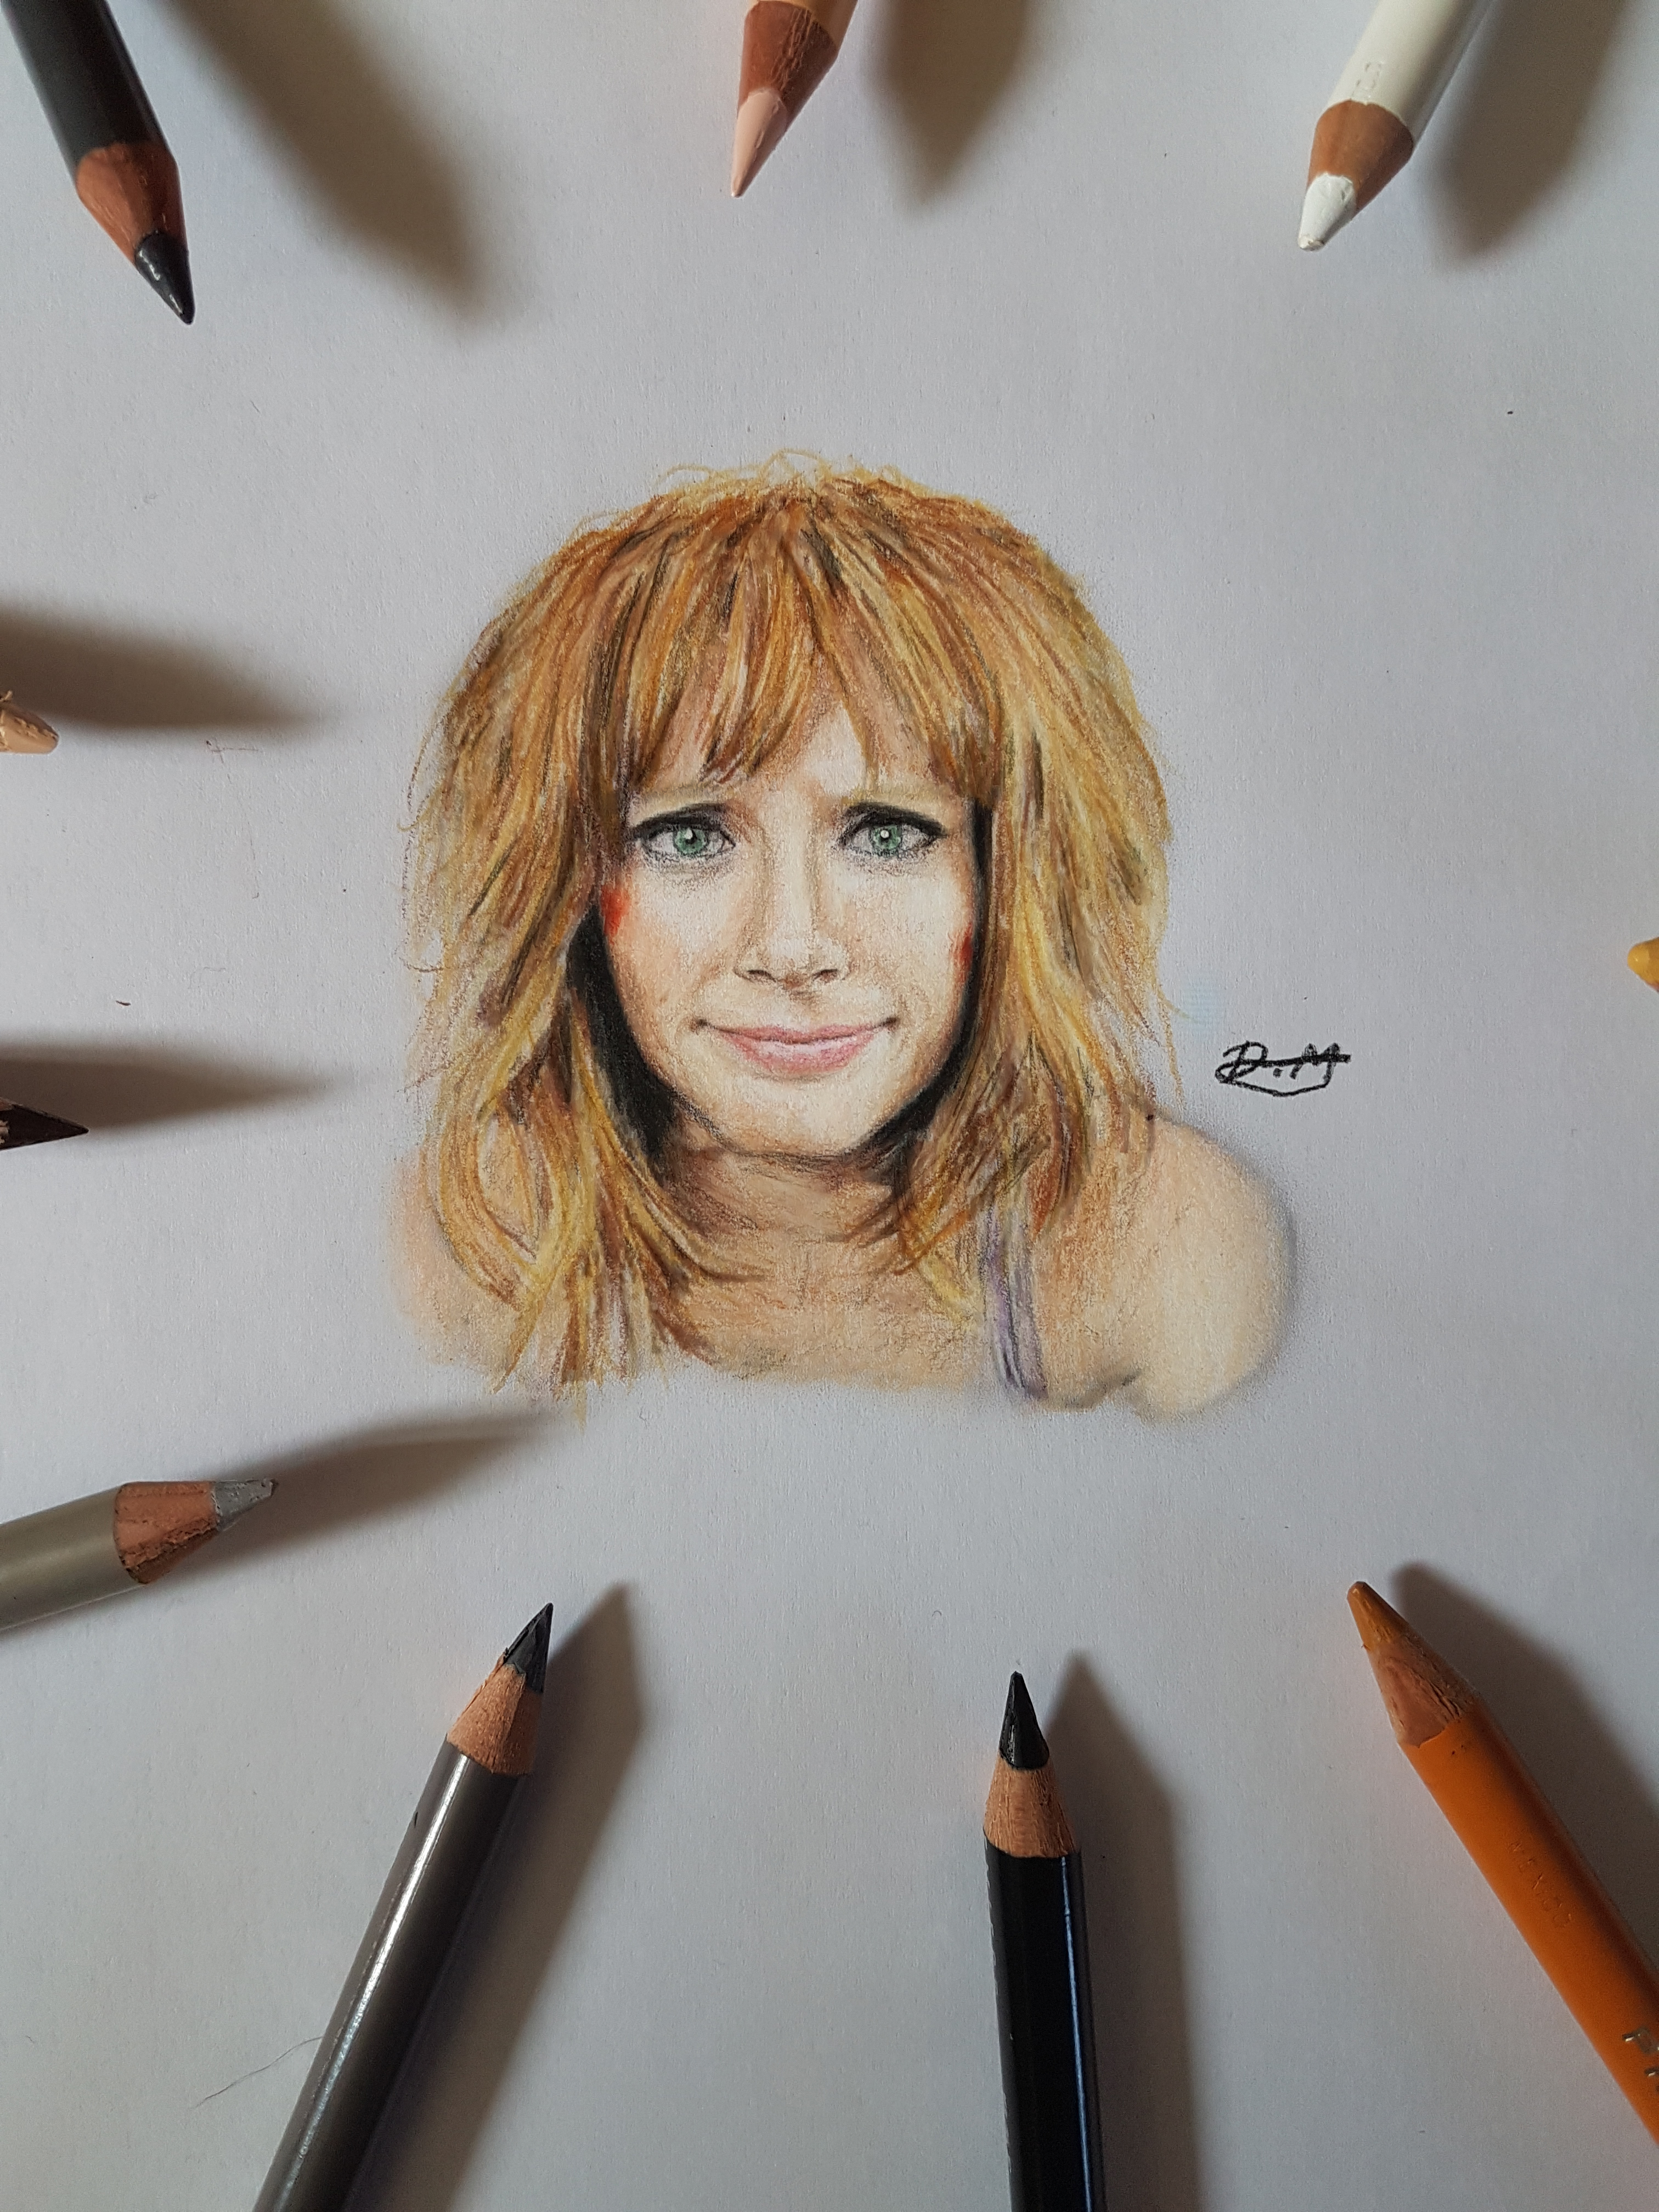 Bryce Dallas Howard Miniature Portrait By Damrock On Newgrounds Your recent projects include jurassic world: bryce dallas howard miniature portrait